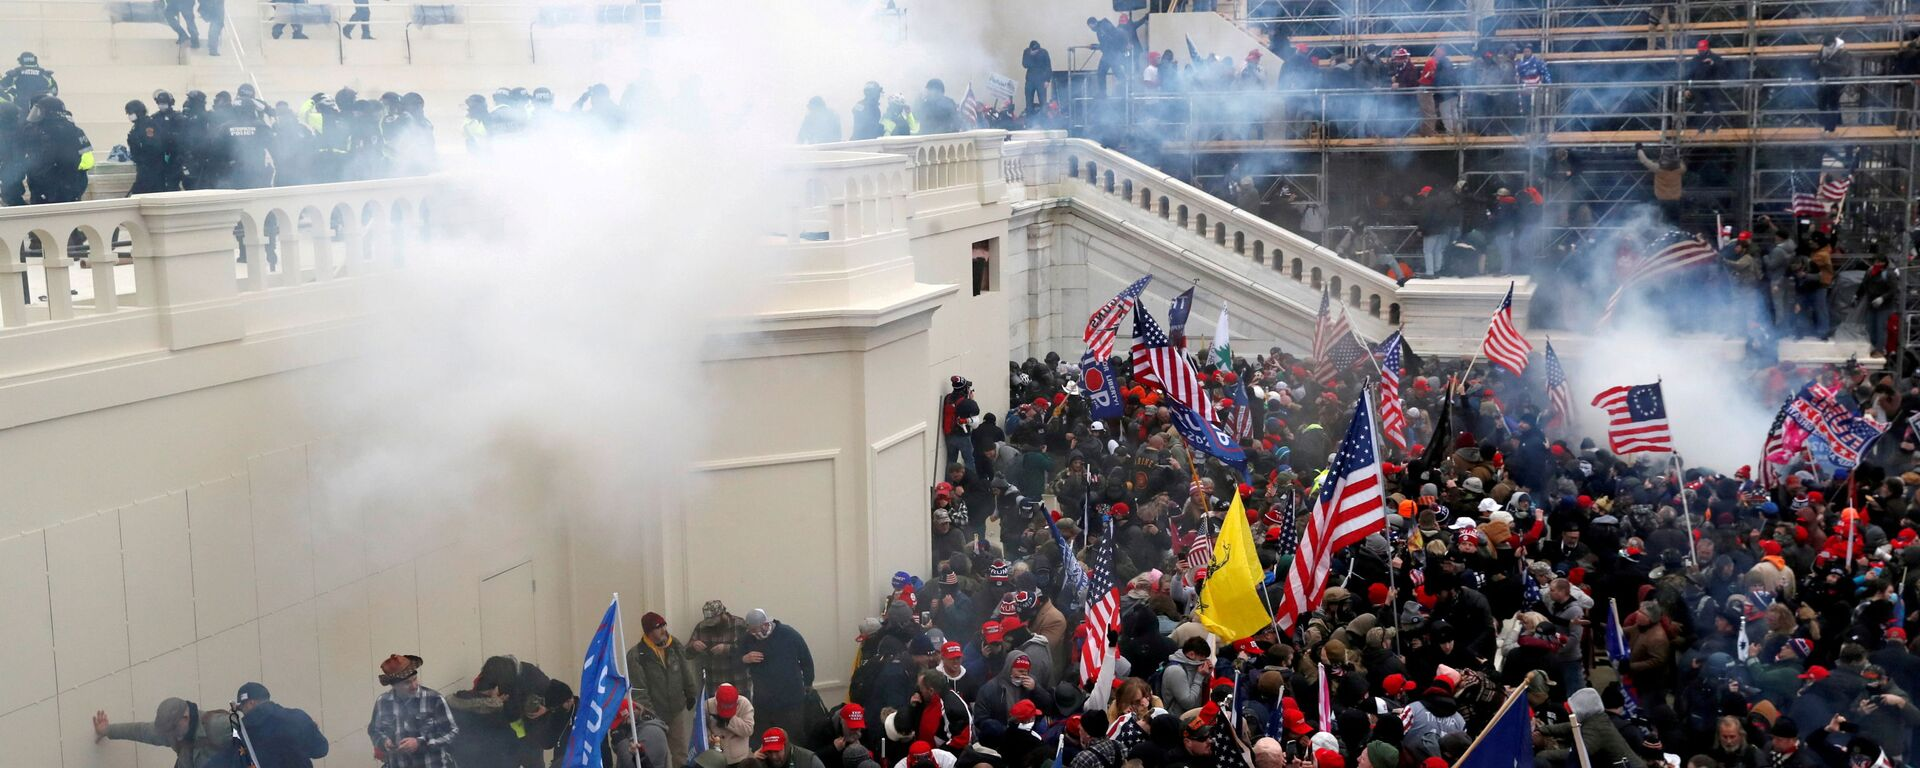 Police release tear gas into a crowd of pro-Trump protesters during clashes at a rally to contest the certification of the 2020 U.S. presidential election results by the U.S. Congress, at the U.S. Capitol Building in Washington, U.S, January 6, 2021. - Sputnik International, 1920, 23.09.2021